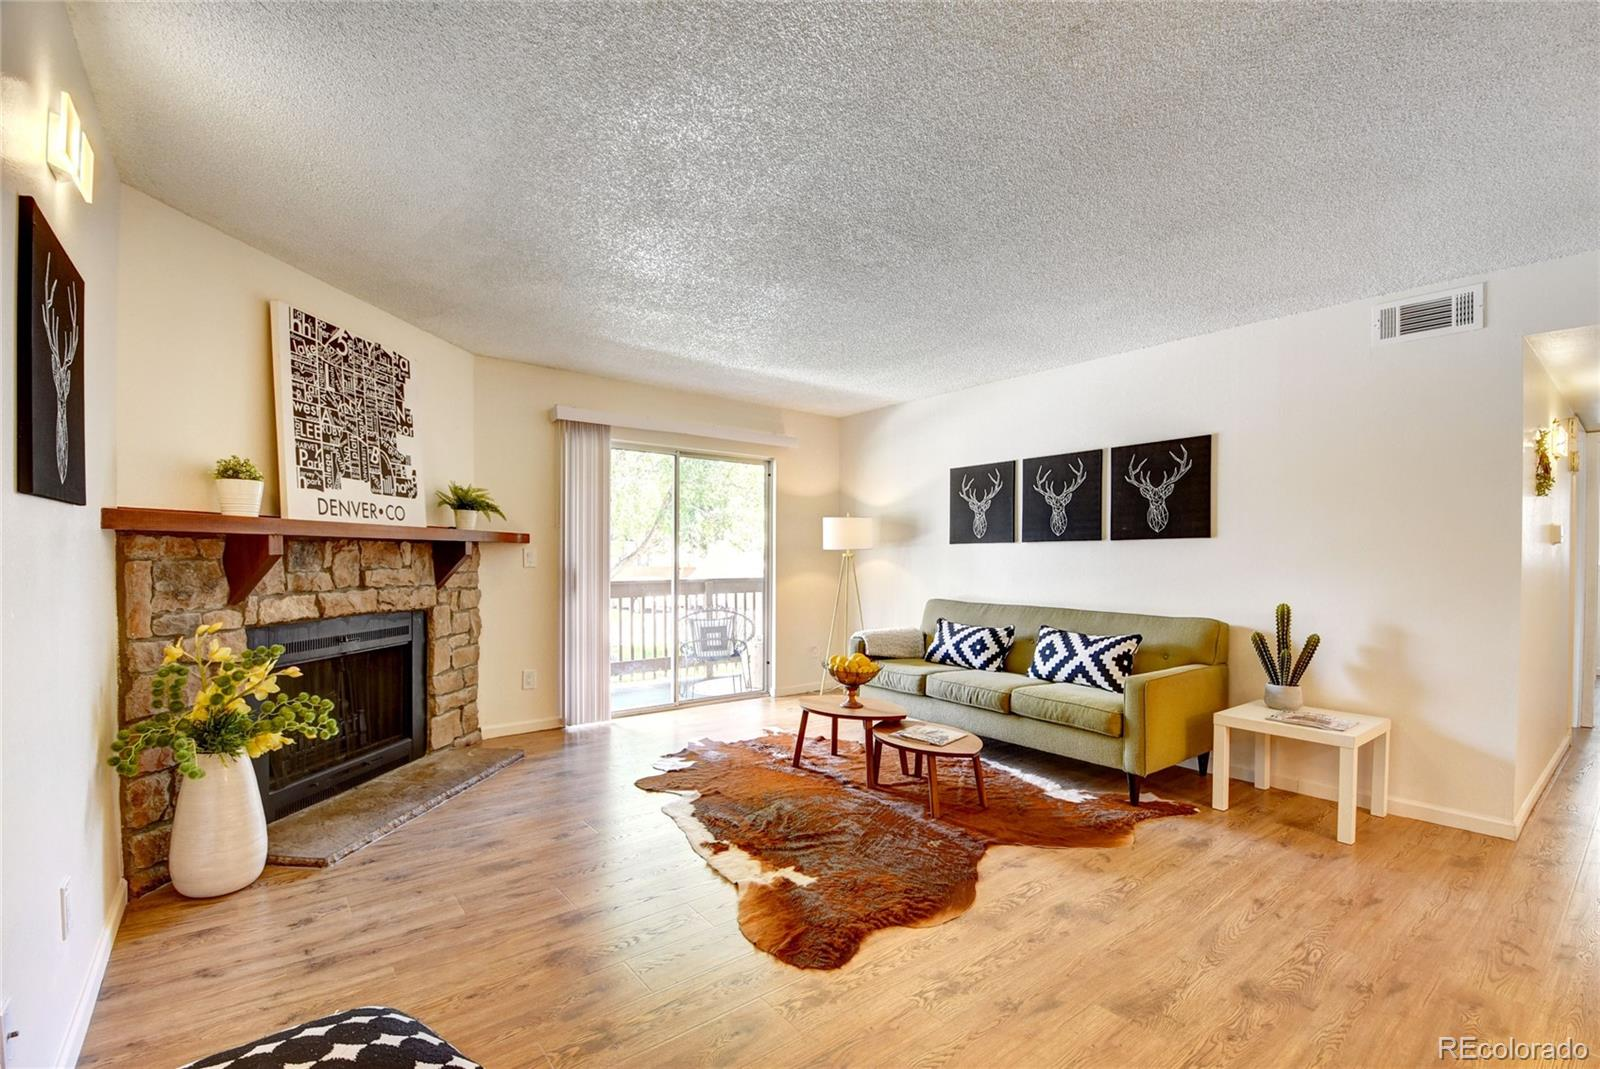 Darling and affordable, farmhouse chic condo located in a central, quiet community. New designer wide plank flooring runs throughout, with new neutral paint, and open-concept living/dining/cooking spaces. Updated kitchen features white kitchen cabinetry, new hardware, black and stainless steel appliances, butcher block laminate counters, and a new iron chandelier in the dining space. Living room offers sliding doors to the covered patio space, and a wood burning fireplace currently functioning with an electric insert. Master suite offers a walk-in closet, and en suite 3/4 bathroom with tiled floors, white and butcher block vanity, newer sink, faucet, and mirror, and tiled shower. True second bedroom has nice closet space and direct access to the patio. The second full bathroom includes a newer sink, faucet and mirror, and a tiled bathtub. Convenient in-unit laundry room features a washer, dryer, and extra storage shelving! Updated light switches and outlets, and regularly maintained HVAC includes a newer thermostat. Reserved parking space #198, plus a private storage unit located off of covered patio. Lots of guest parking available! HOA includes an outdoor pool, clubhouse, snow and trash removal, and grounds maintenance. Easy access to I-225, Nine Mile RTD Station, several bus stops, shopping and several dining options to include Dry Dock Brewing, Tacos El Metate, and Mojo Coffee.